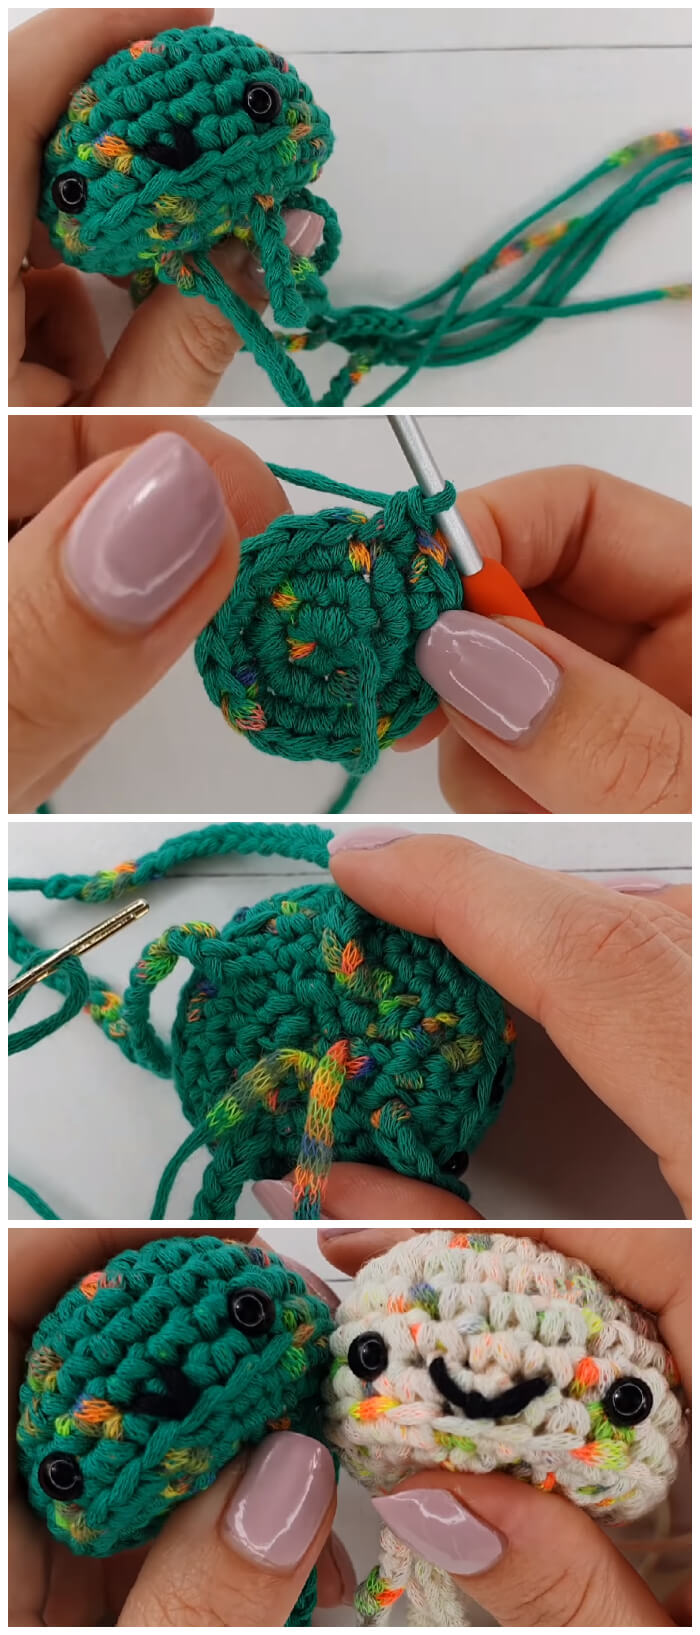 Crochet along with me to make yourself your very own Amigurumi Jellyfish Keychain - super cute and SUPER fast to make!